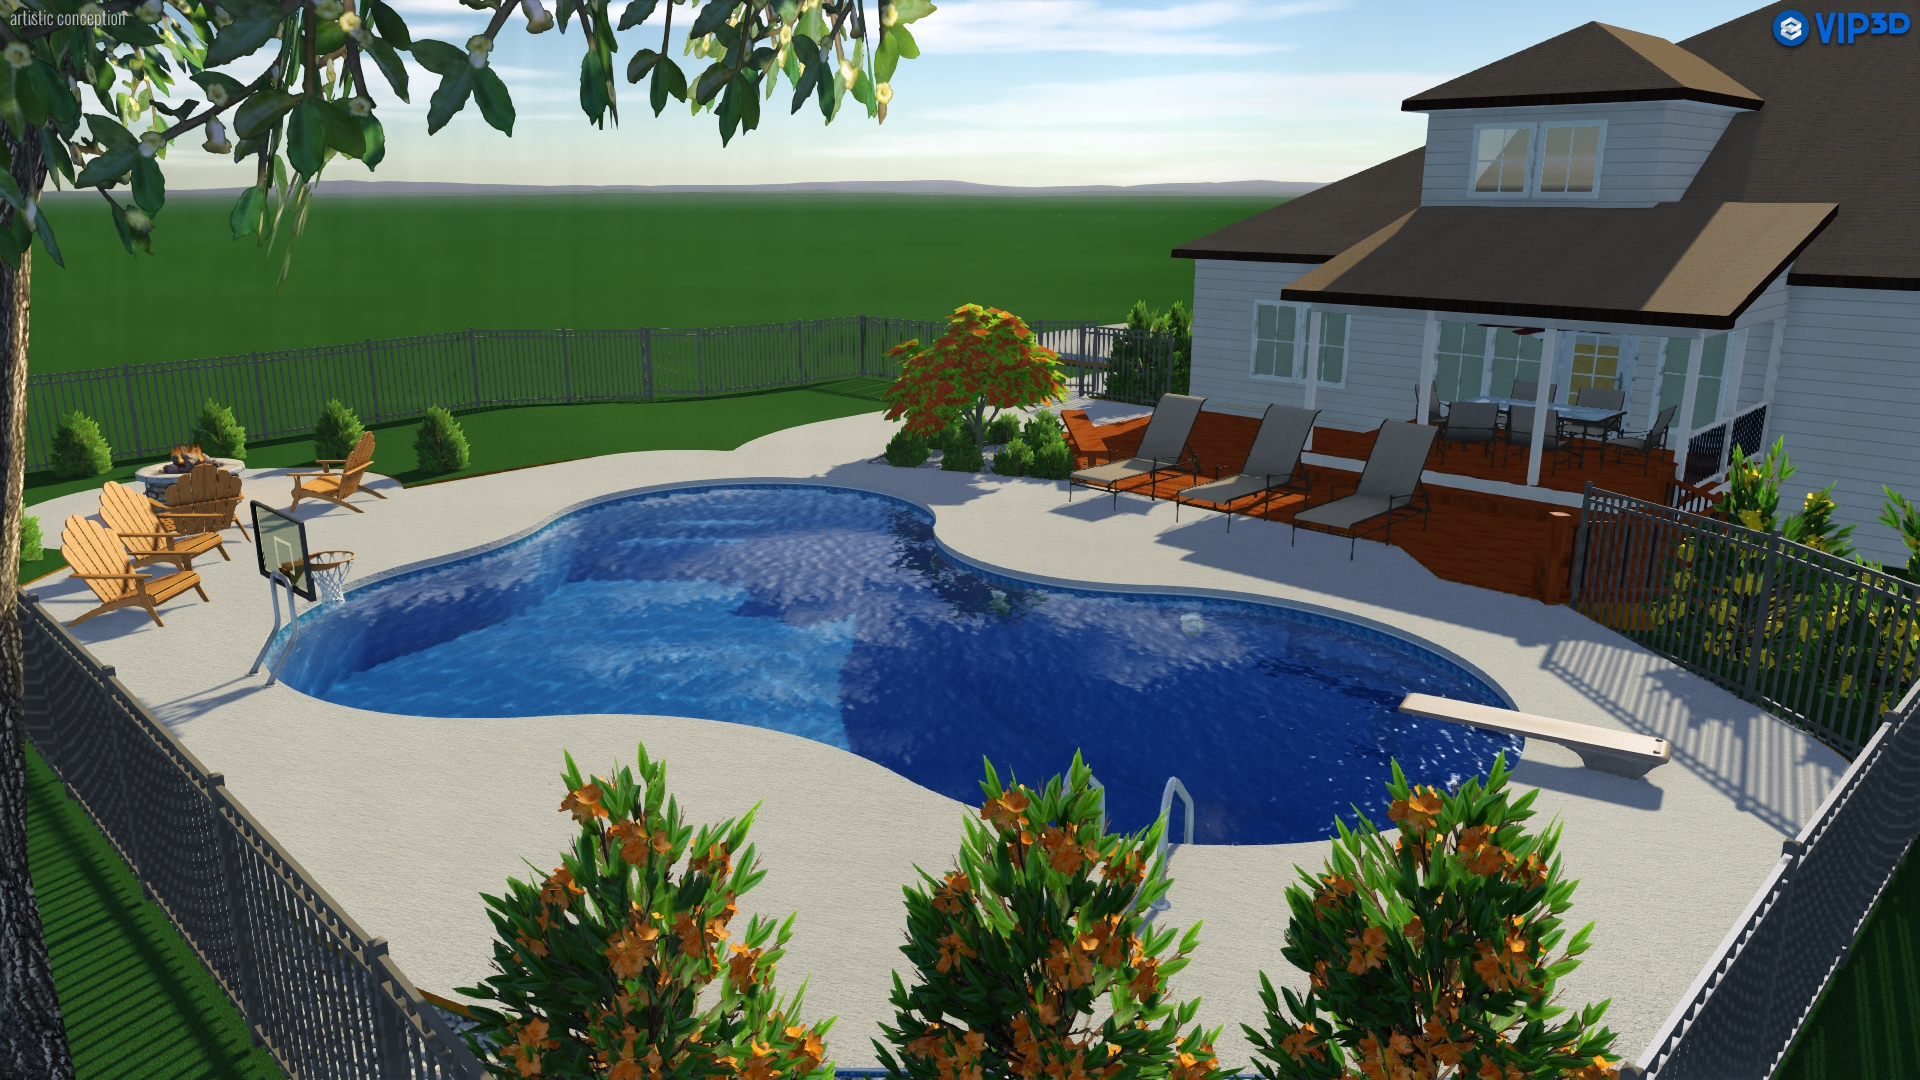 Raleigh landscape design 3d pool spa services choice p s for Pool design raleigh nc